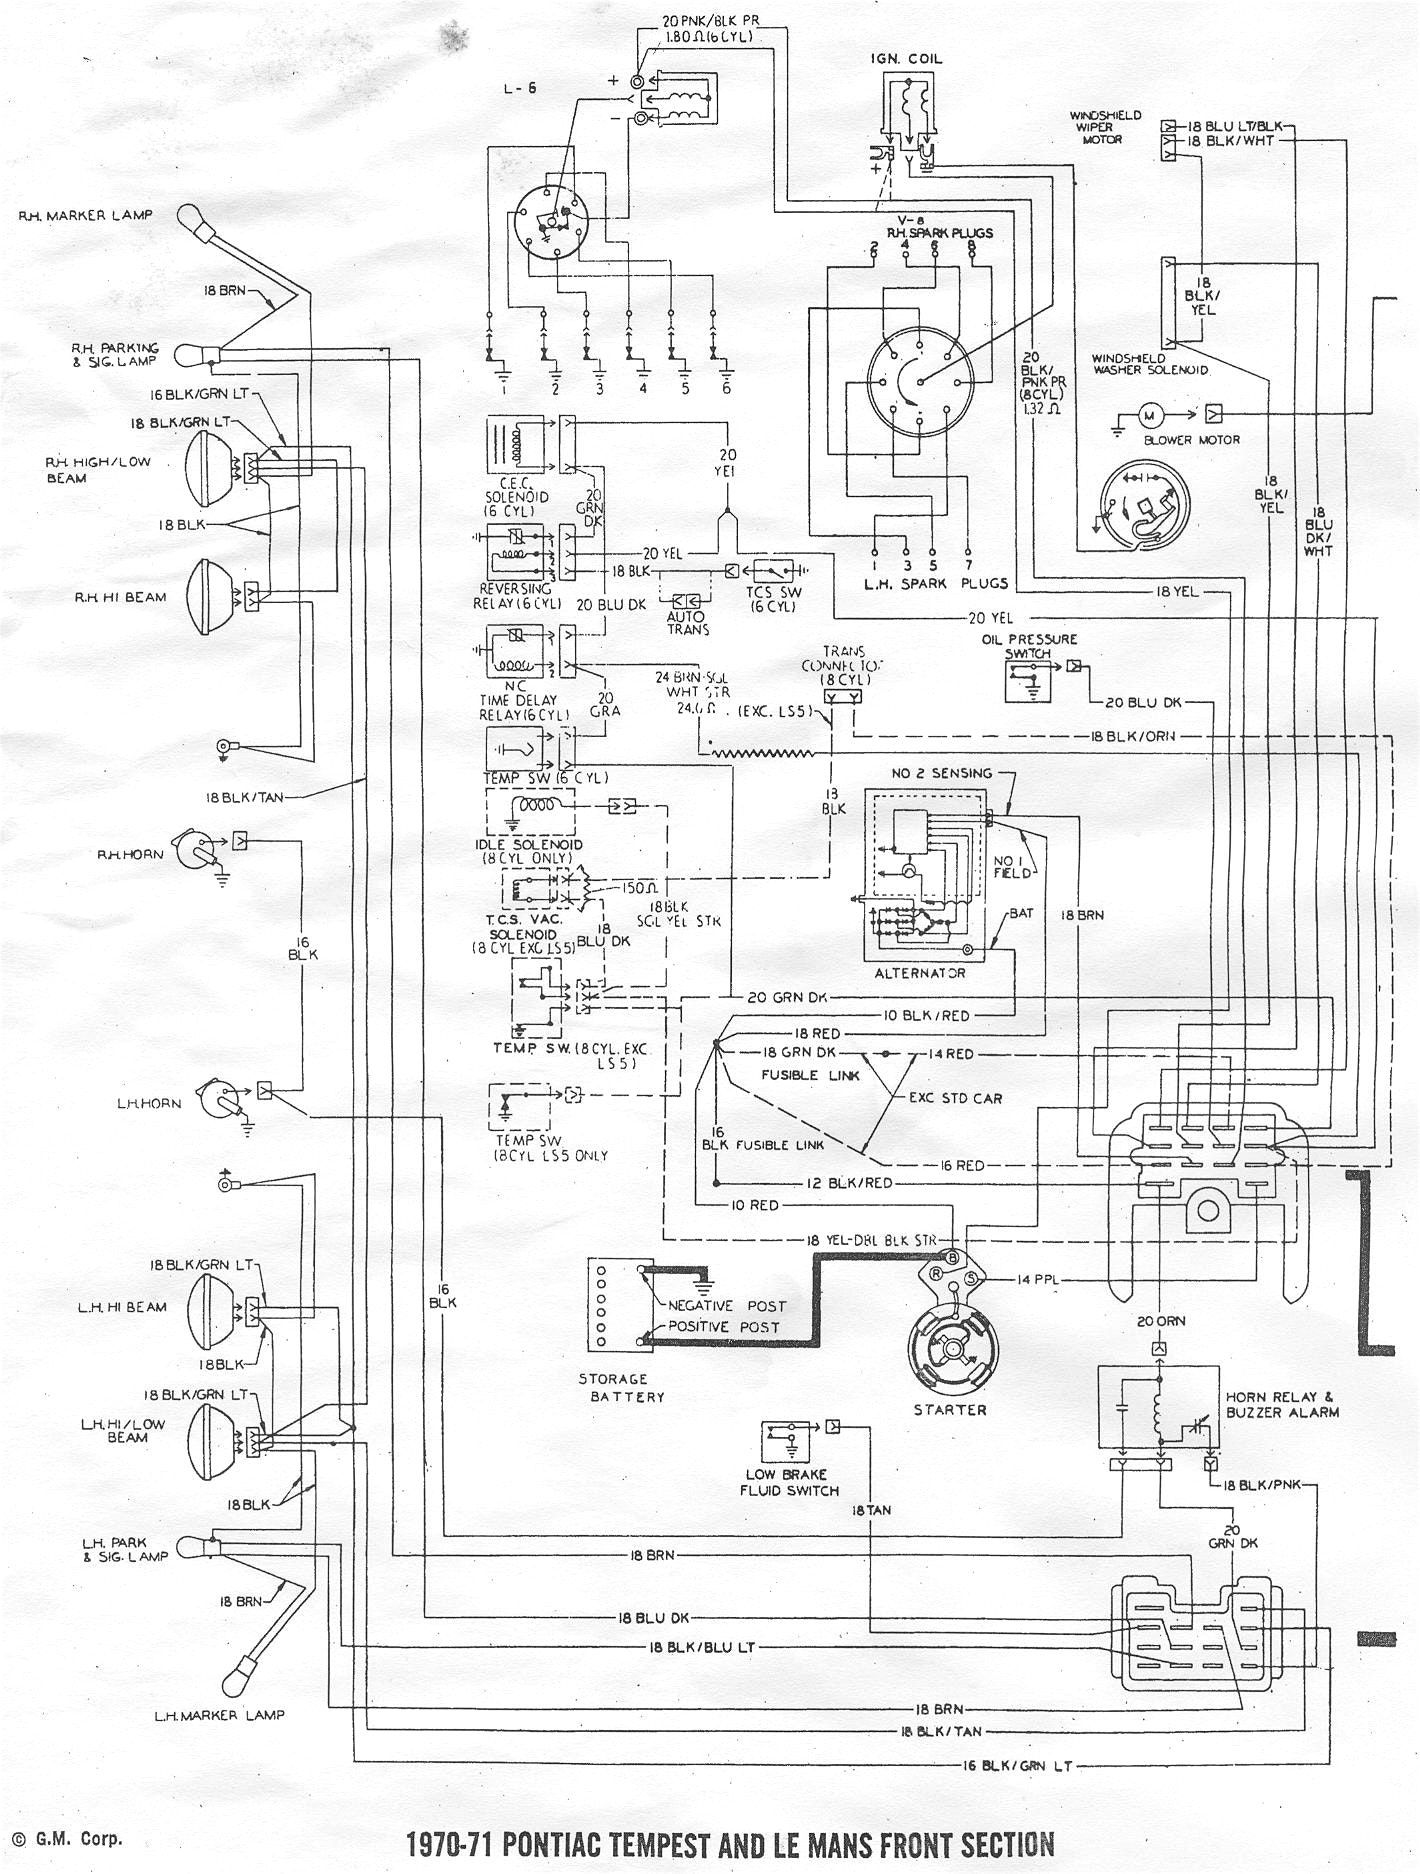 Alarm Wiring Diagram For Isuzu Nqr - Wiring Diagram Networks